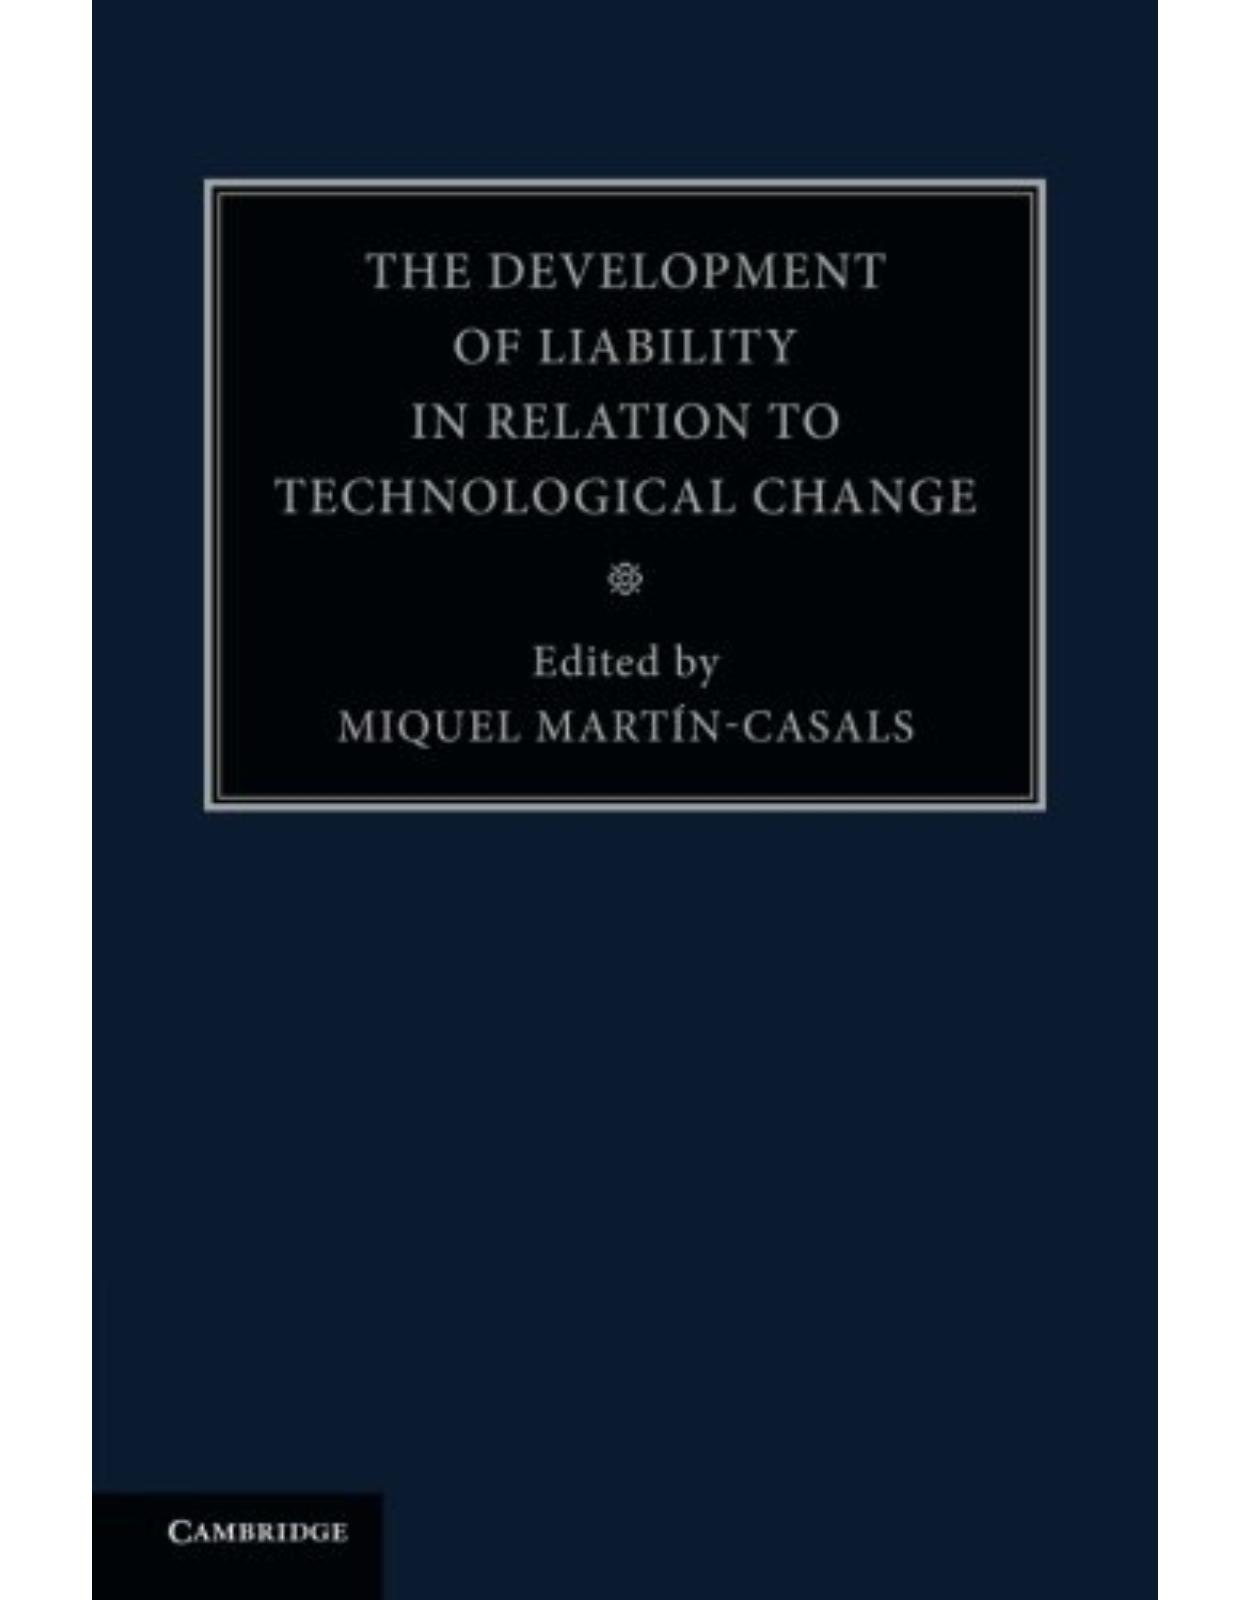 The Development of Liability in Relation to Technological Change: Volume 4